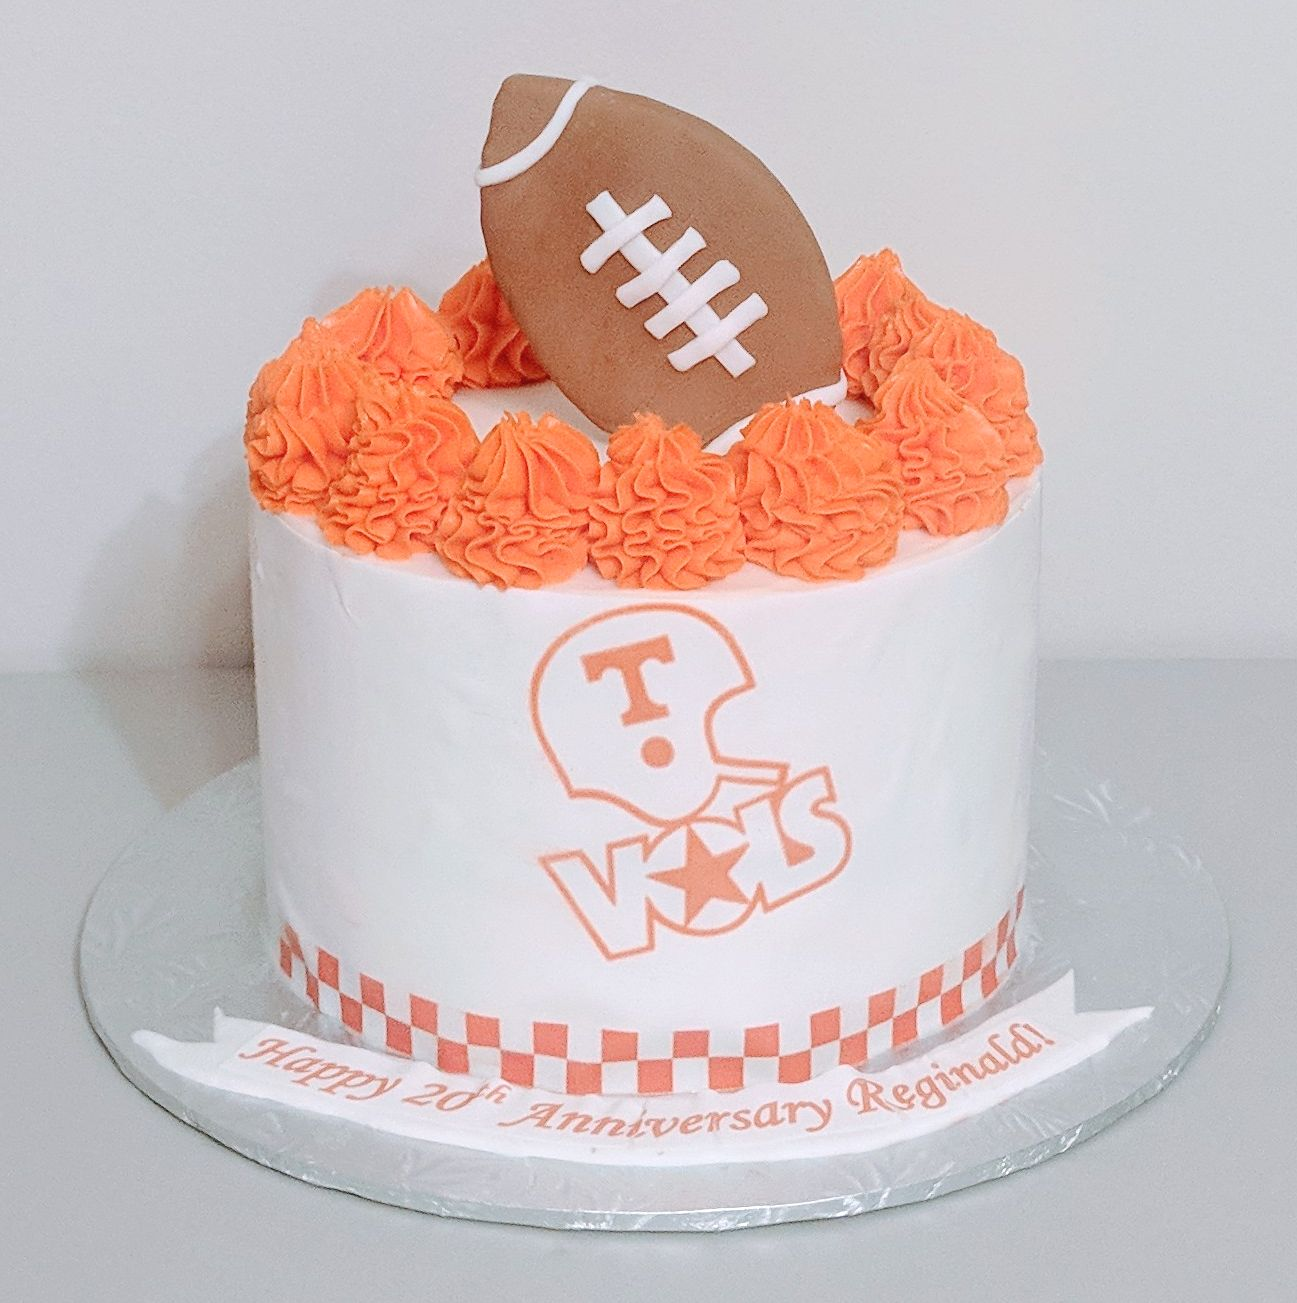 UT Football Cake